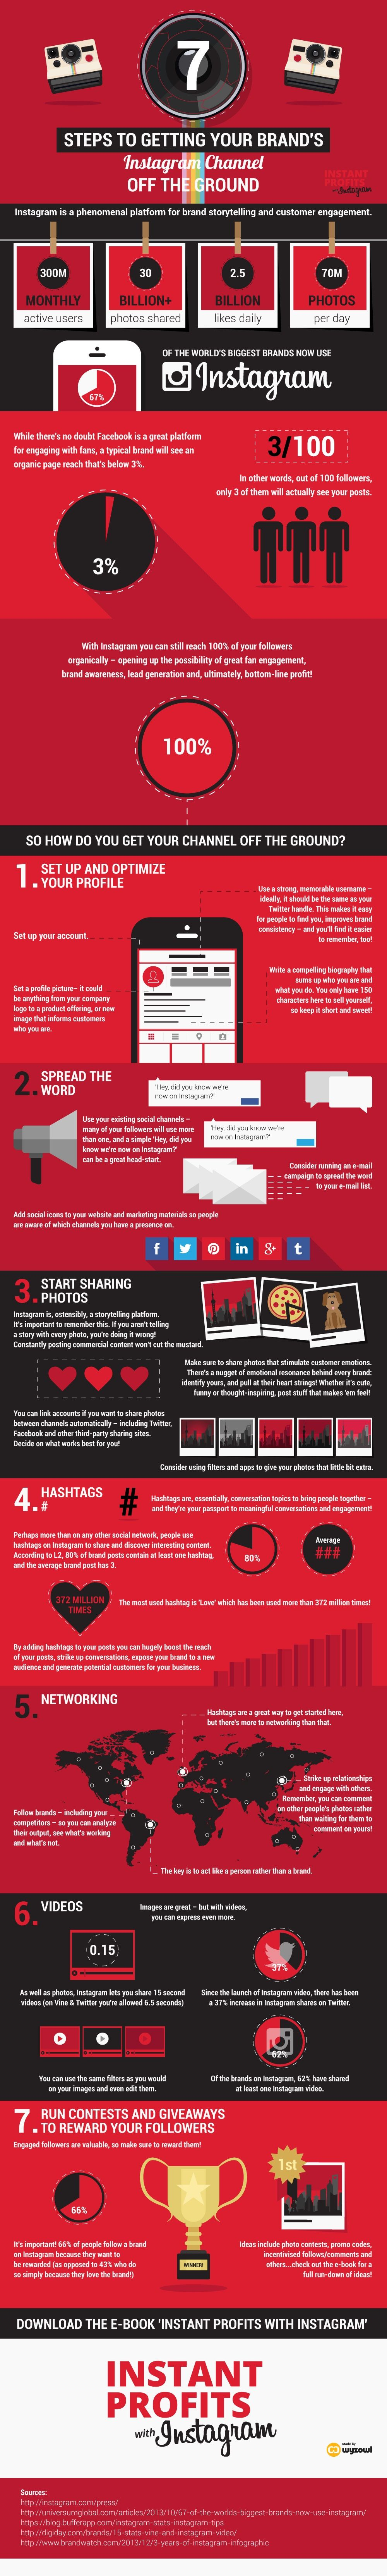 Infographic: 7 Steps To Get Your Brand's Instagram Off The Ground